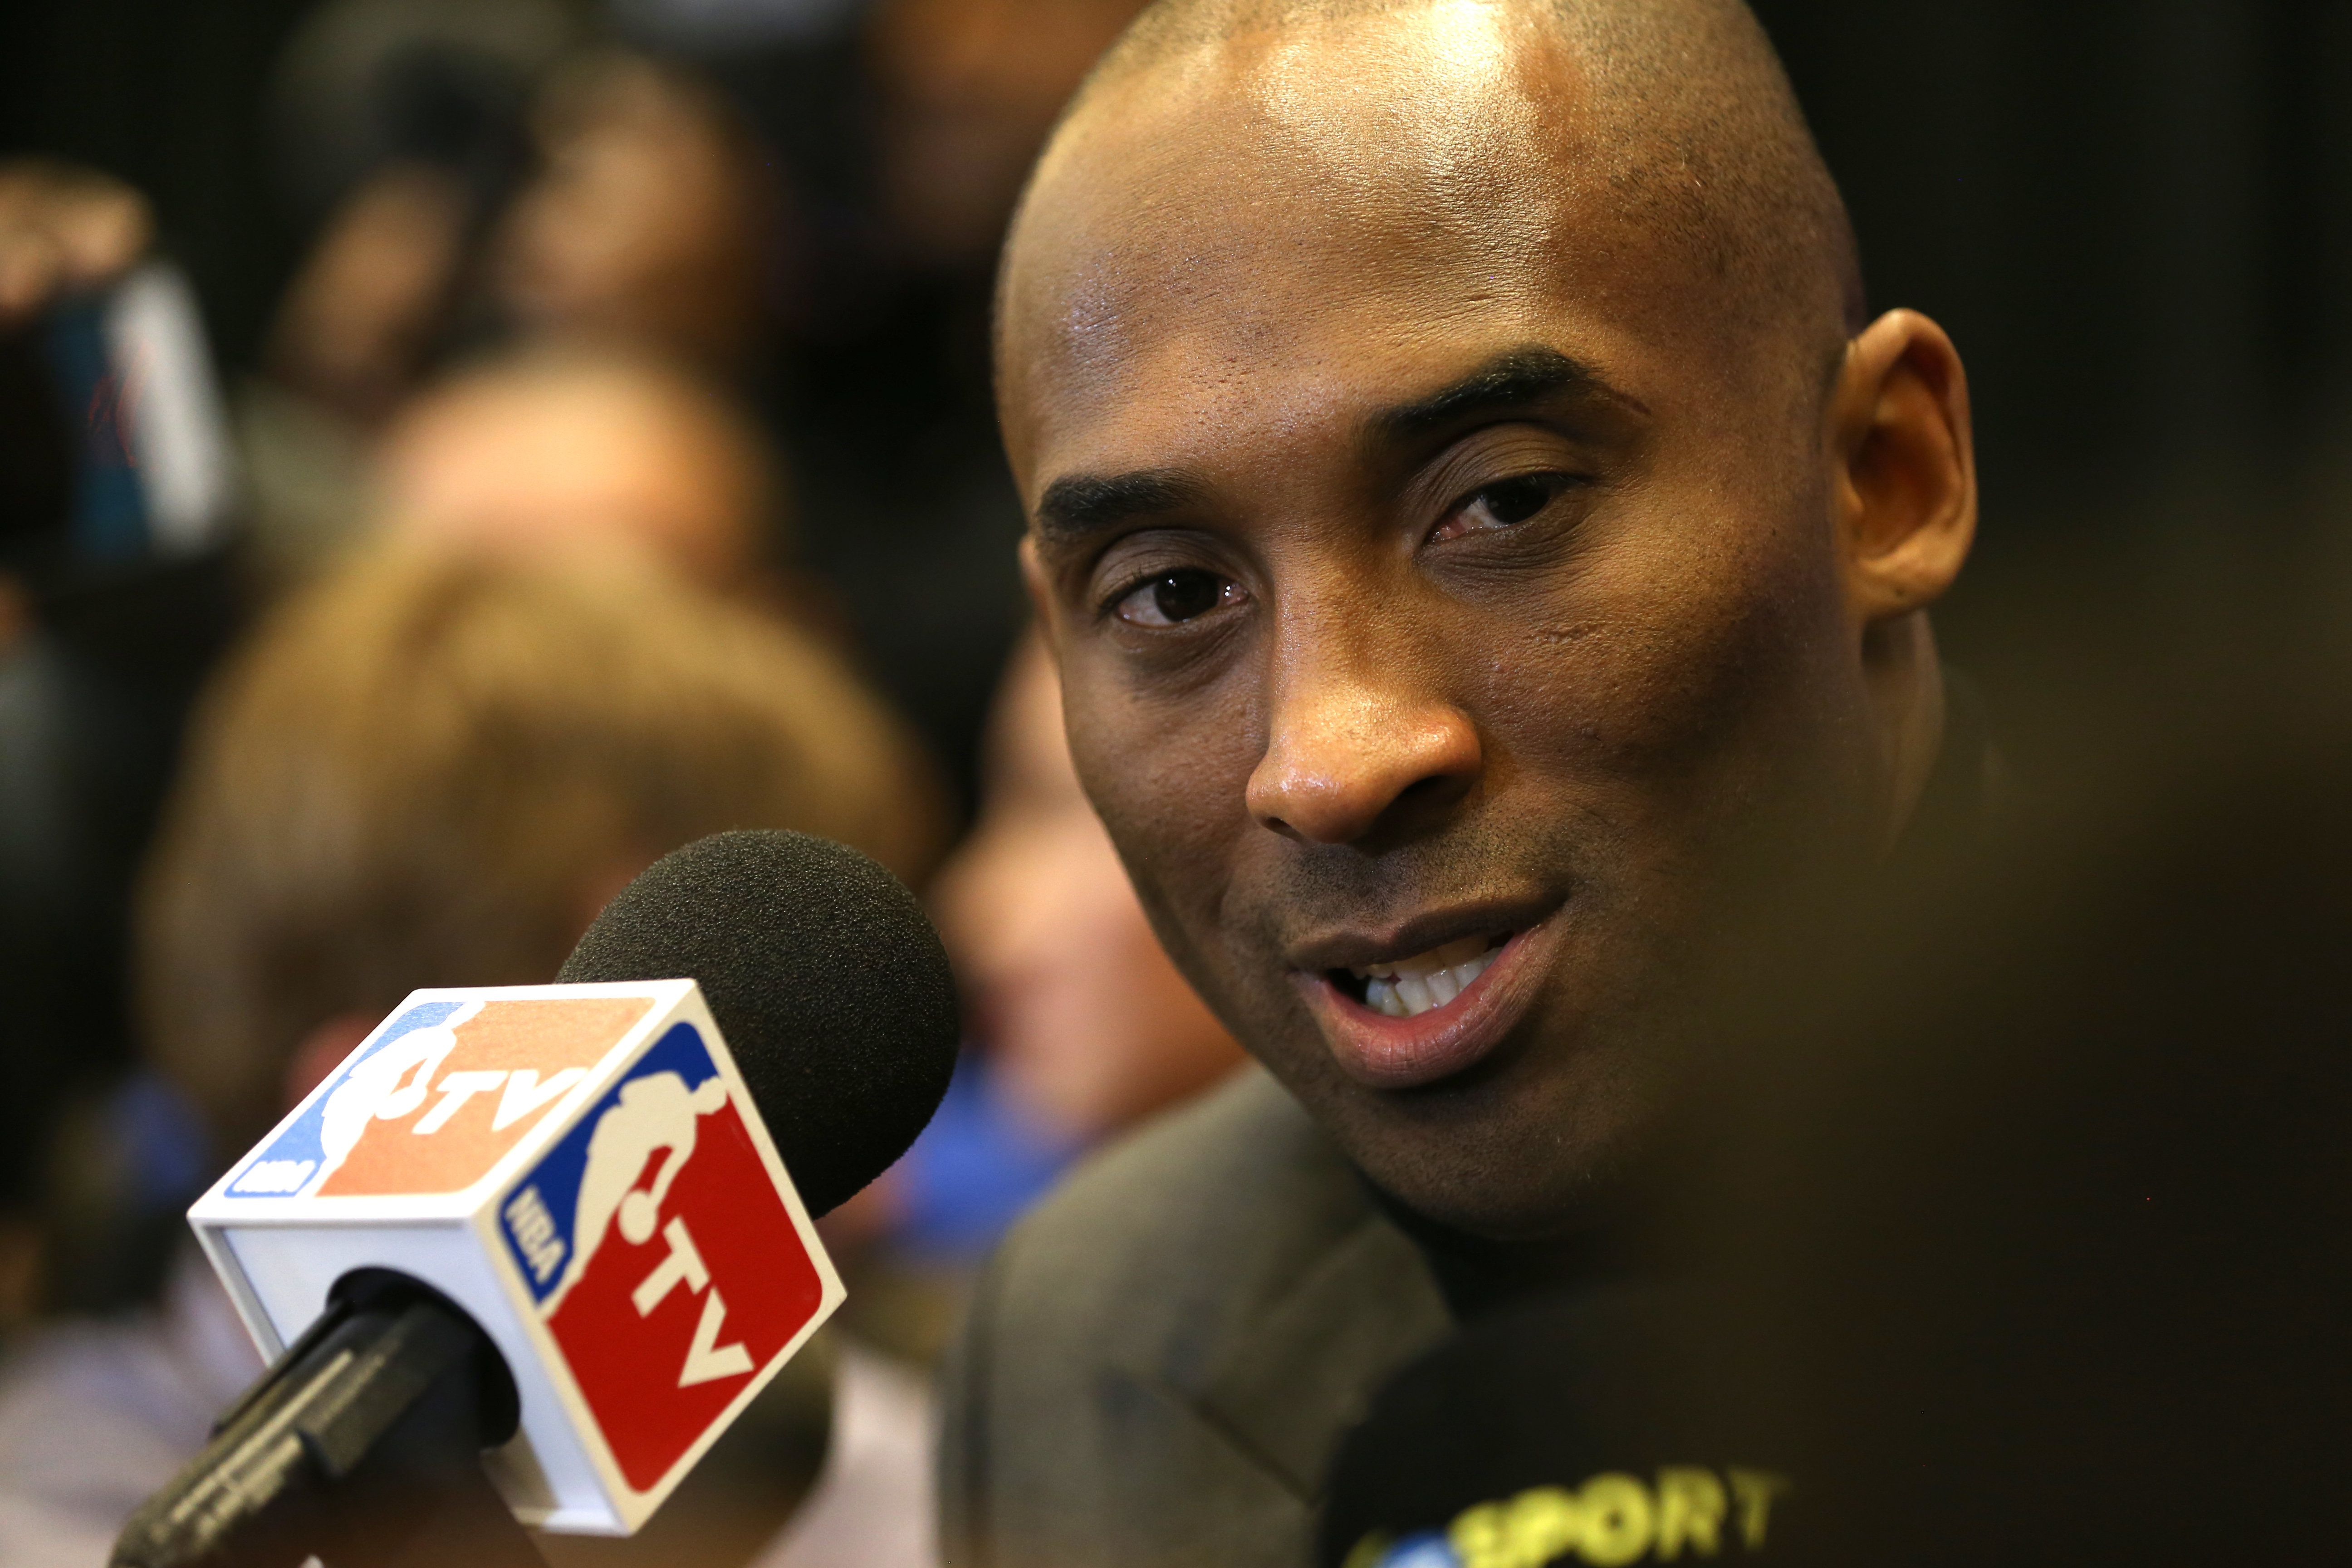 TORONTO, CANADA - FEBRUARY 12:  Kobe Bryant #24 of the Los Angeles Lakers speaks to the media during media availability as part of 2016 NBA All-Star Weekend at the Sheraton Centre Toronto Hotel on February 12, 2016 in Toronto, Ontario, Canada. NOTE TO USER: User expressly acknowledges and agrees that, by downloading and/or using this photograph, user is consenting to the terms and conditions of the Getty Images License Agreement.  Mandatory Copyright Notice: Copyright 2016 NBAE (Photo by Dave Sandford/NBAE via Getty Images)